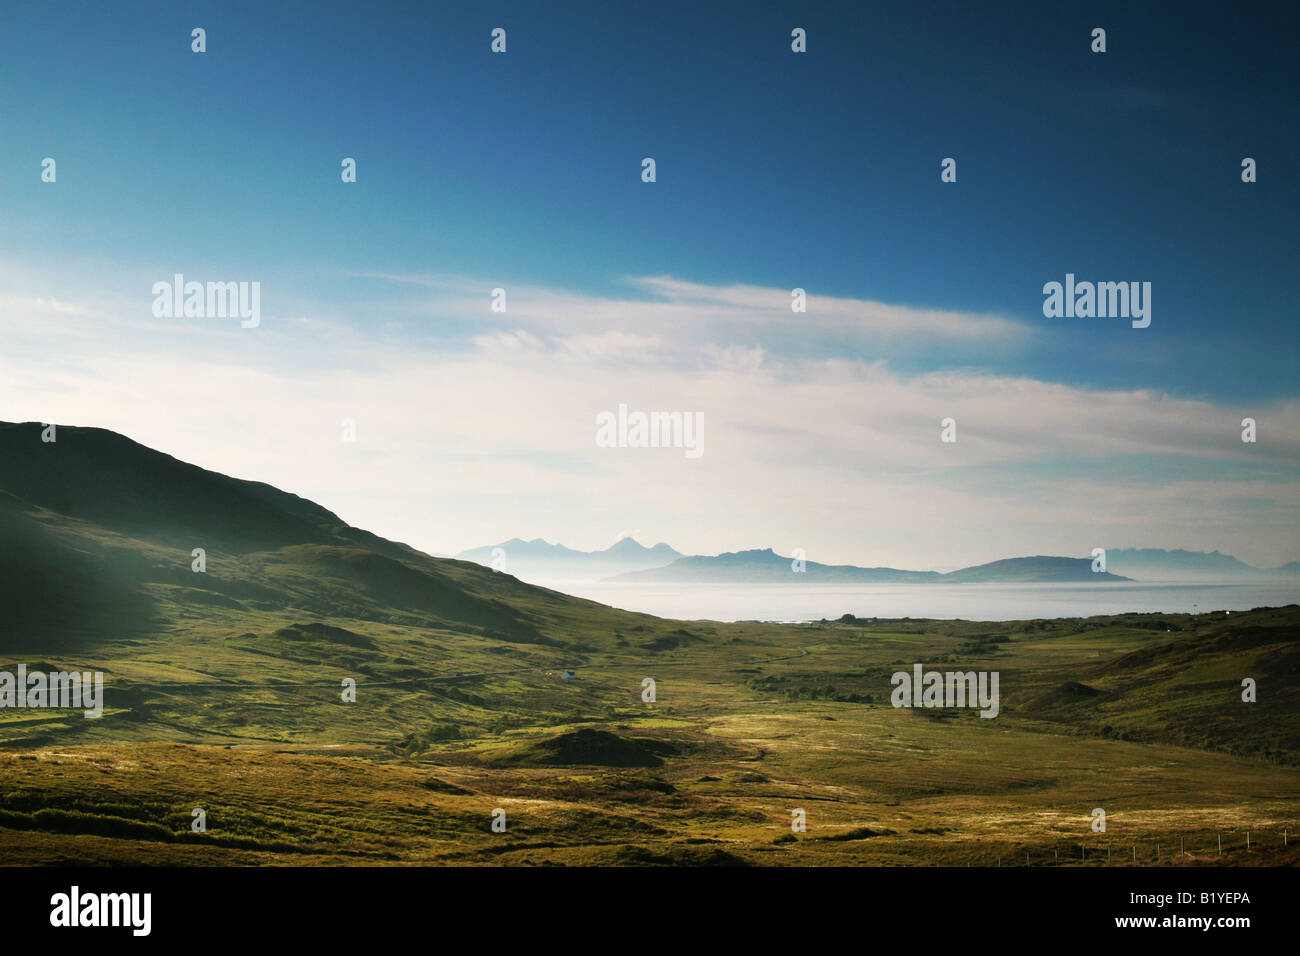 view looking across to the isles of Eigg and Rum - Stock Image